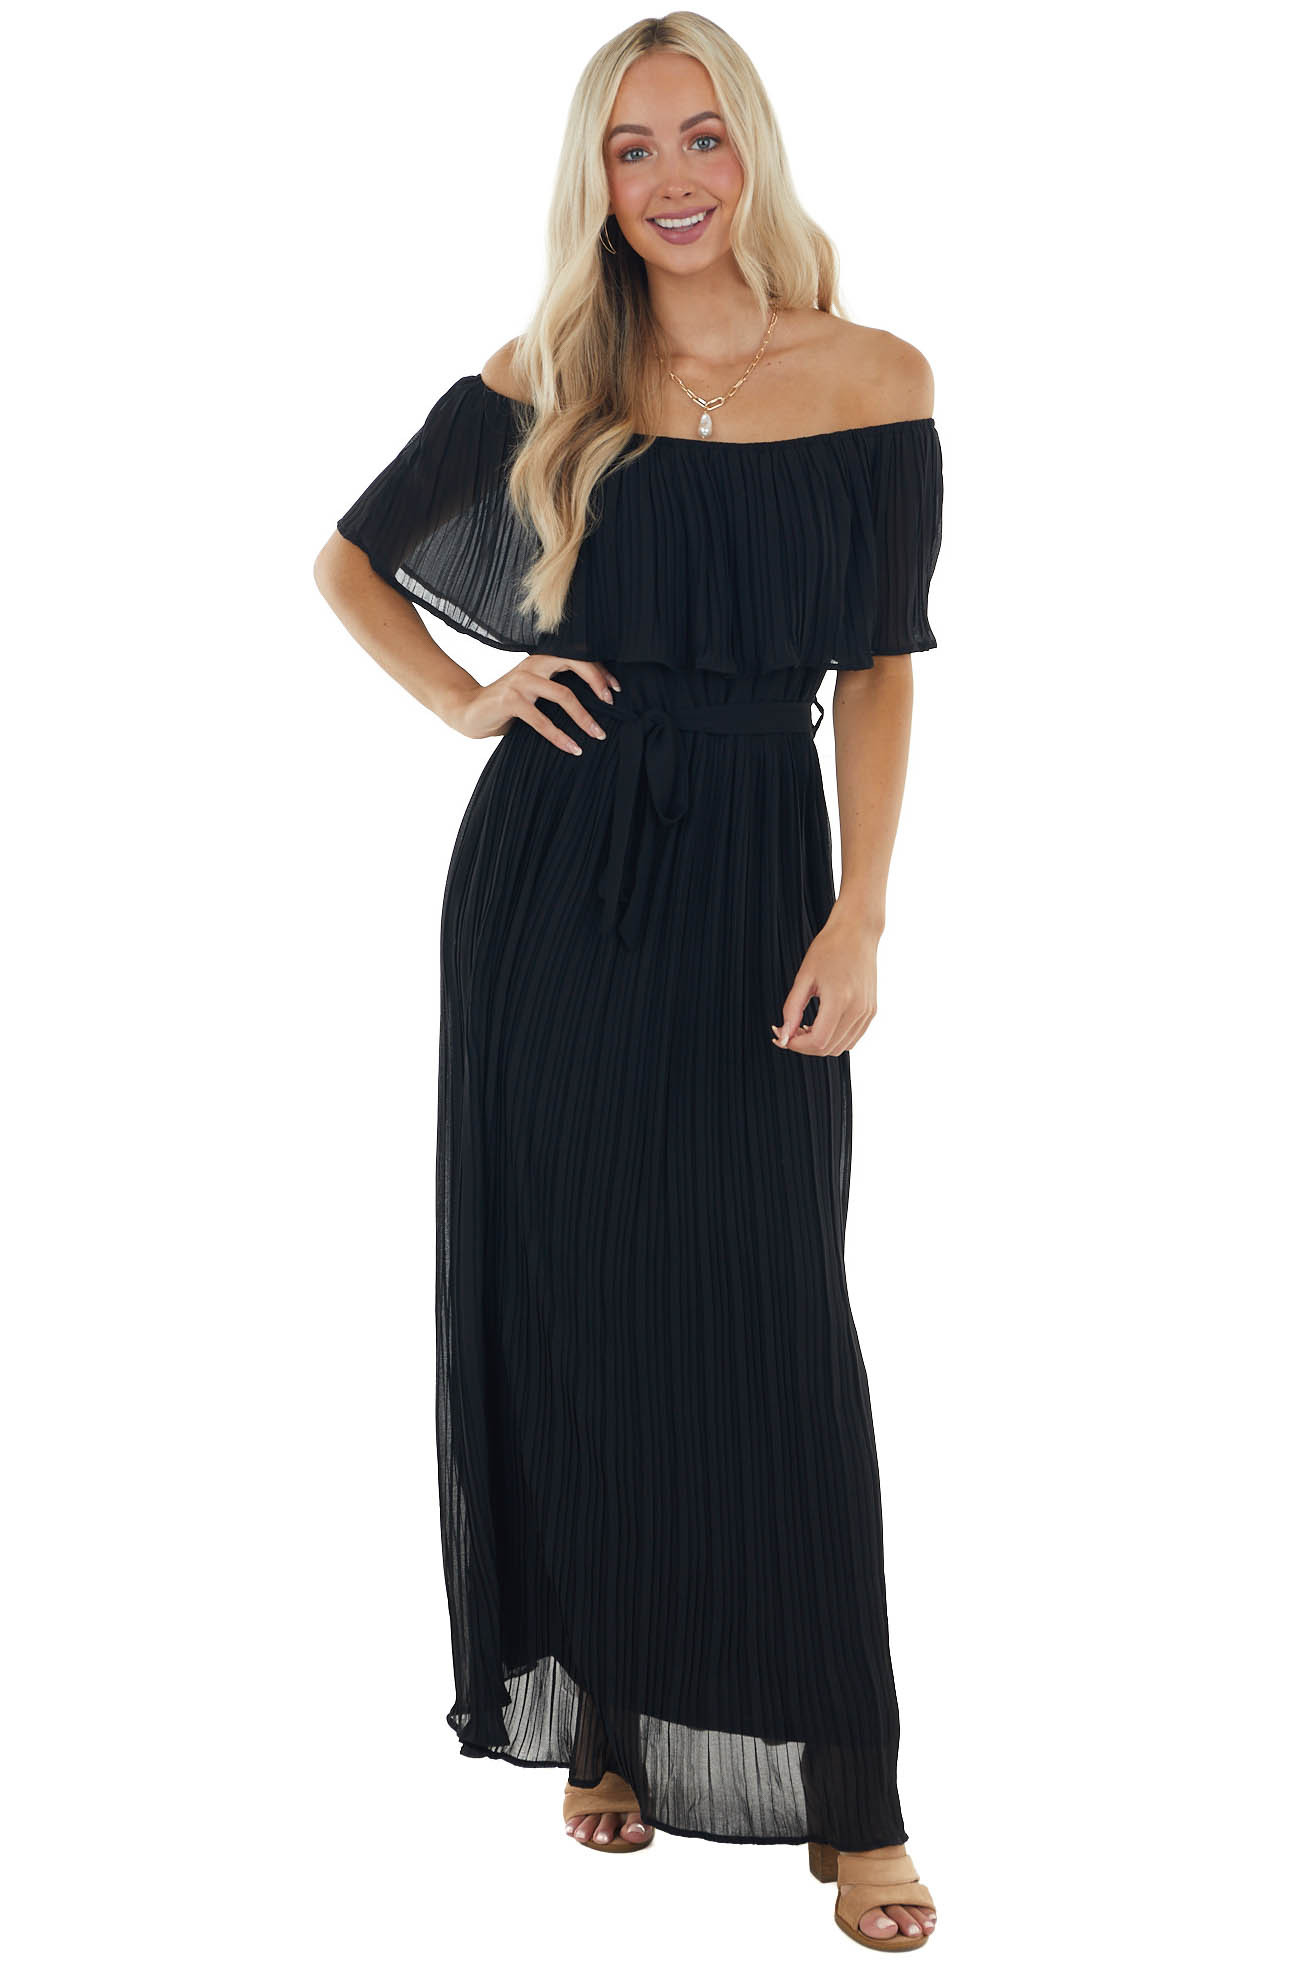 Black Pleated Maxi Dress with Overlay Bust and Waist Tie